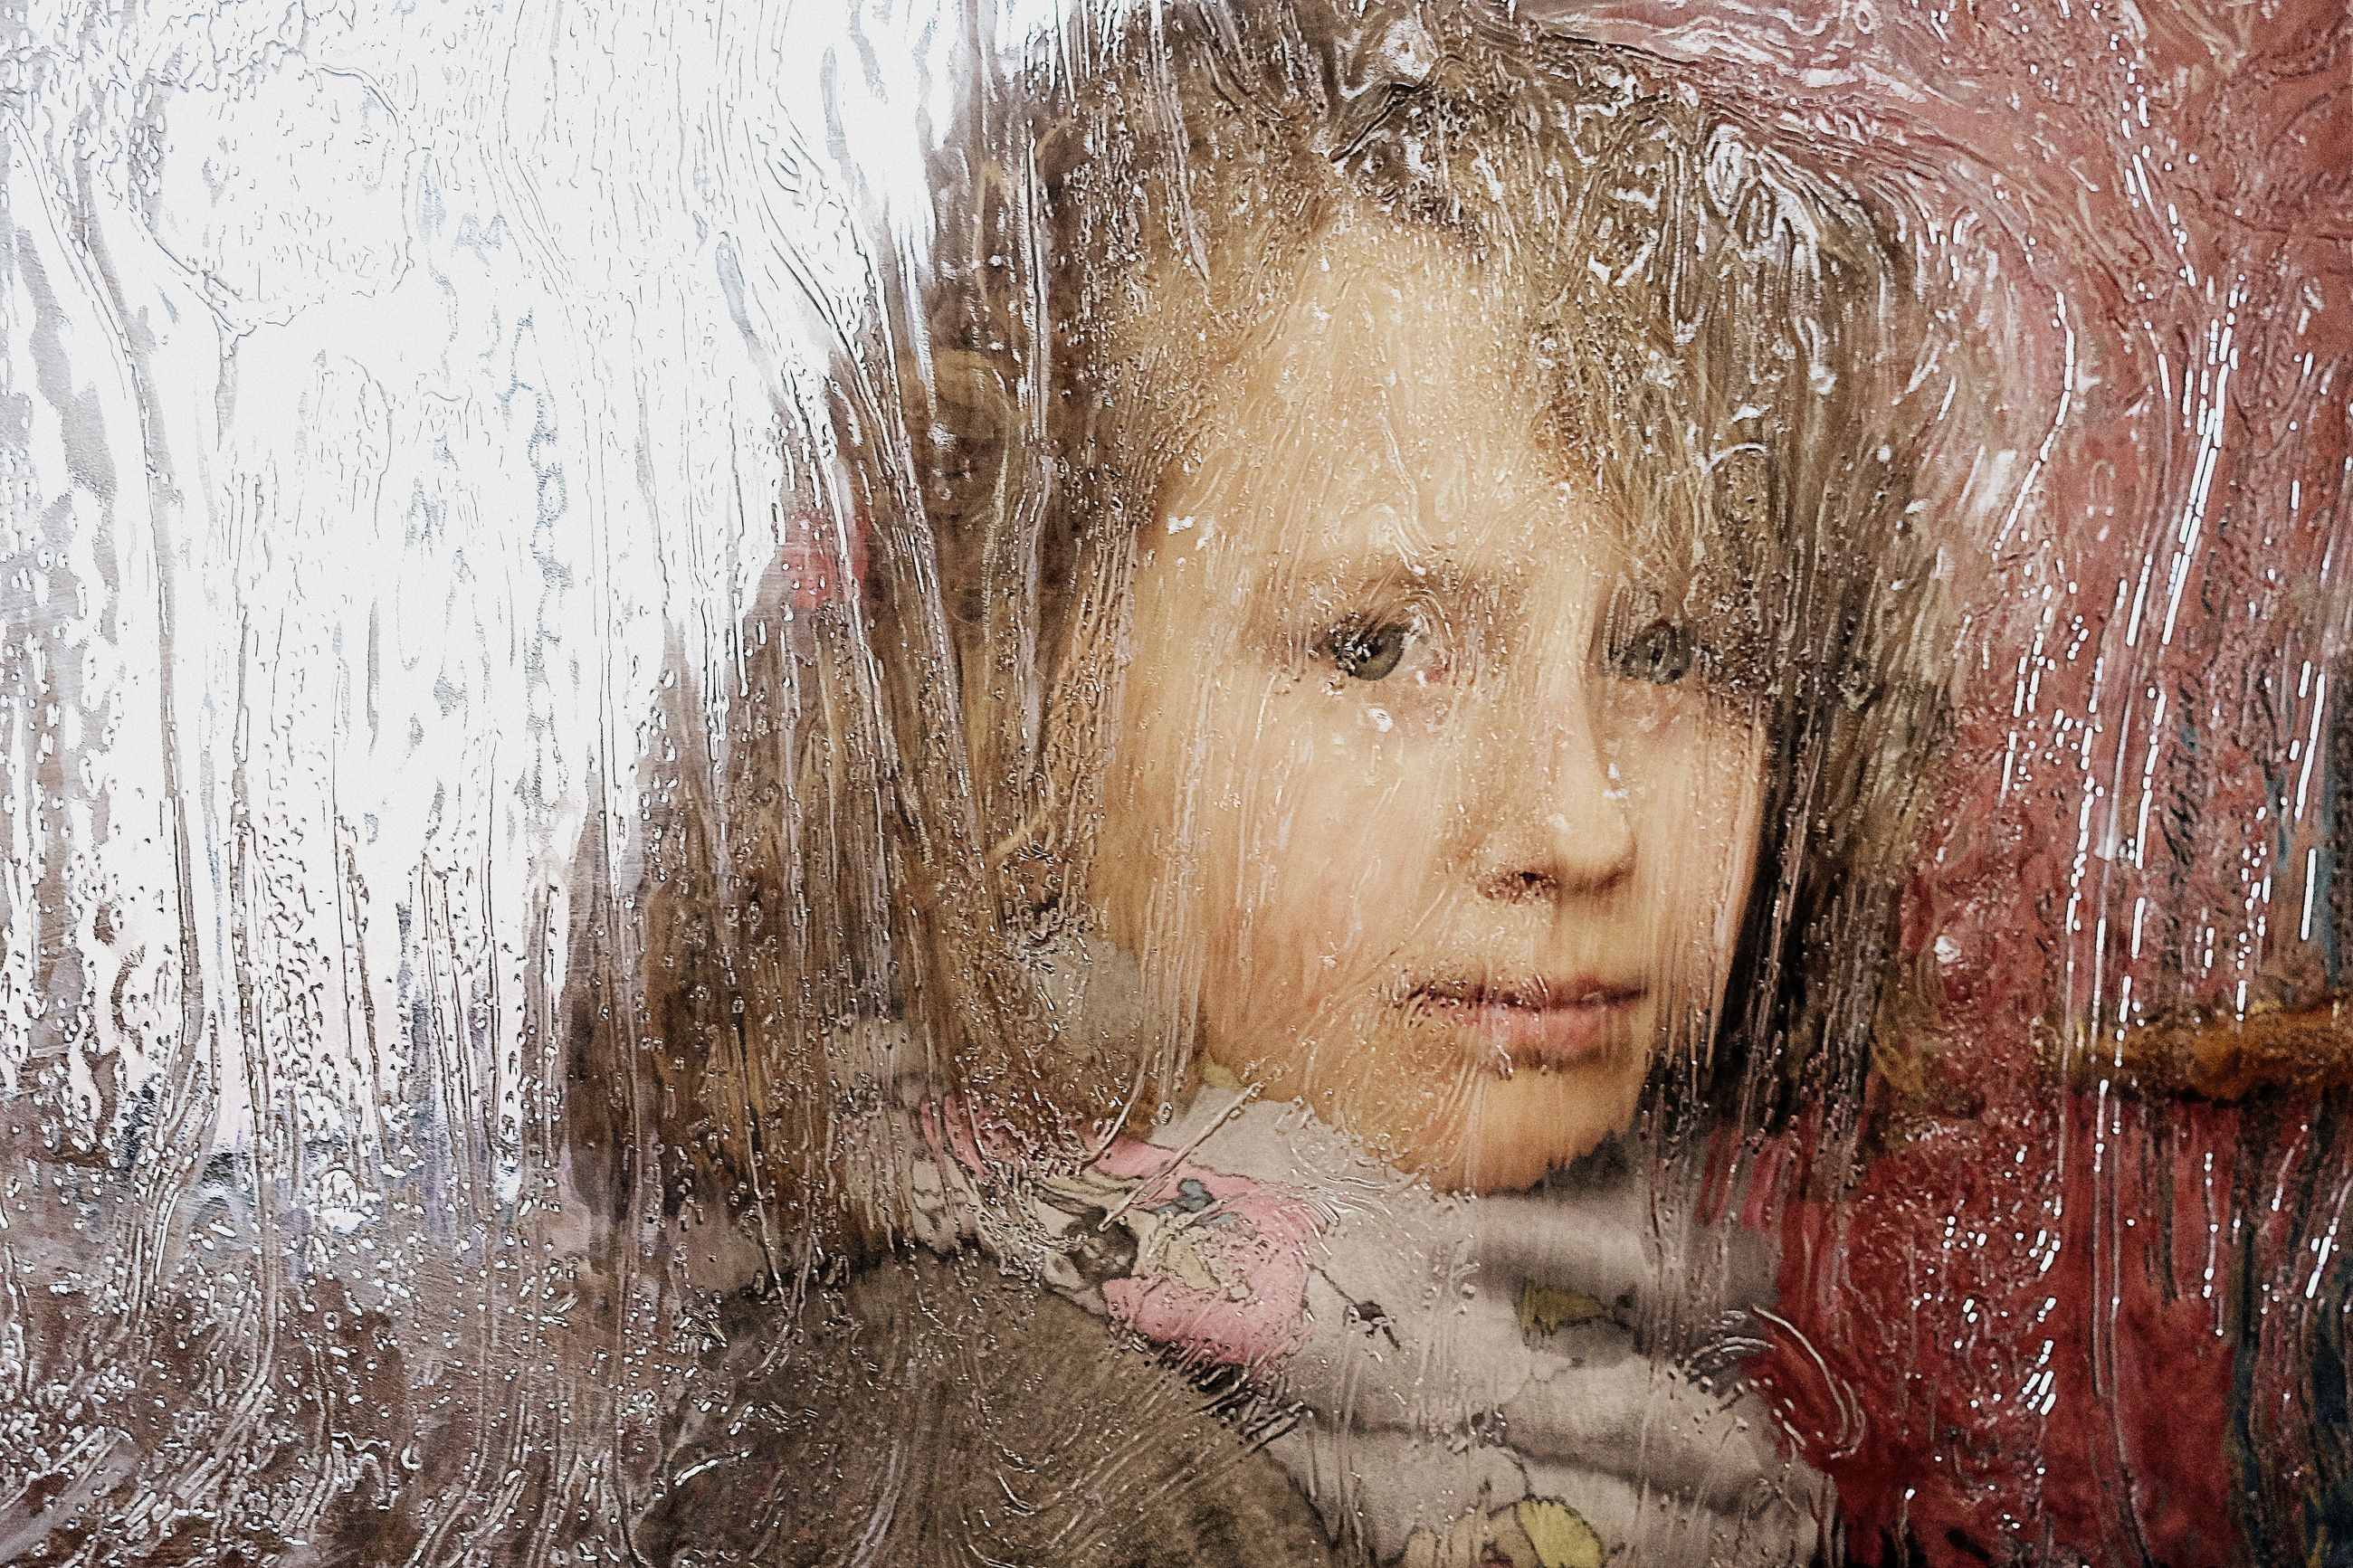 CLOSE-UP PORTRAIT OF WOMAN LOOKING THROUGH WINDOW IN WINTER